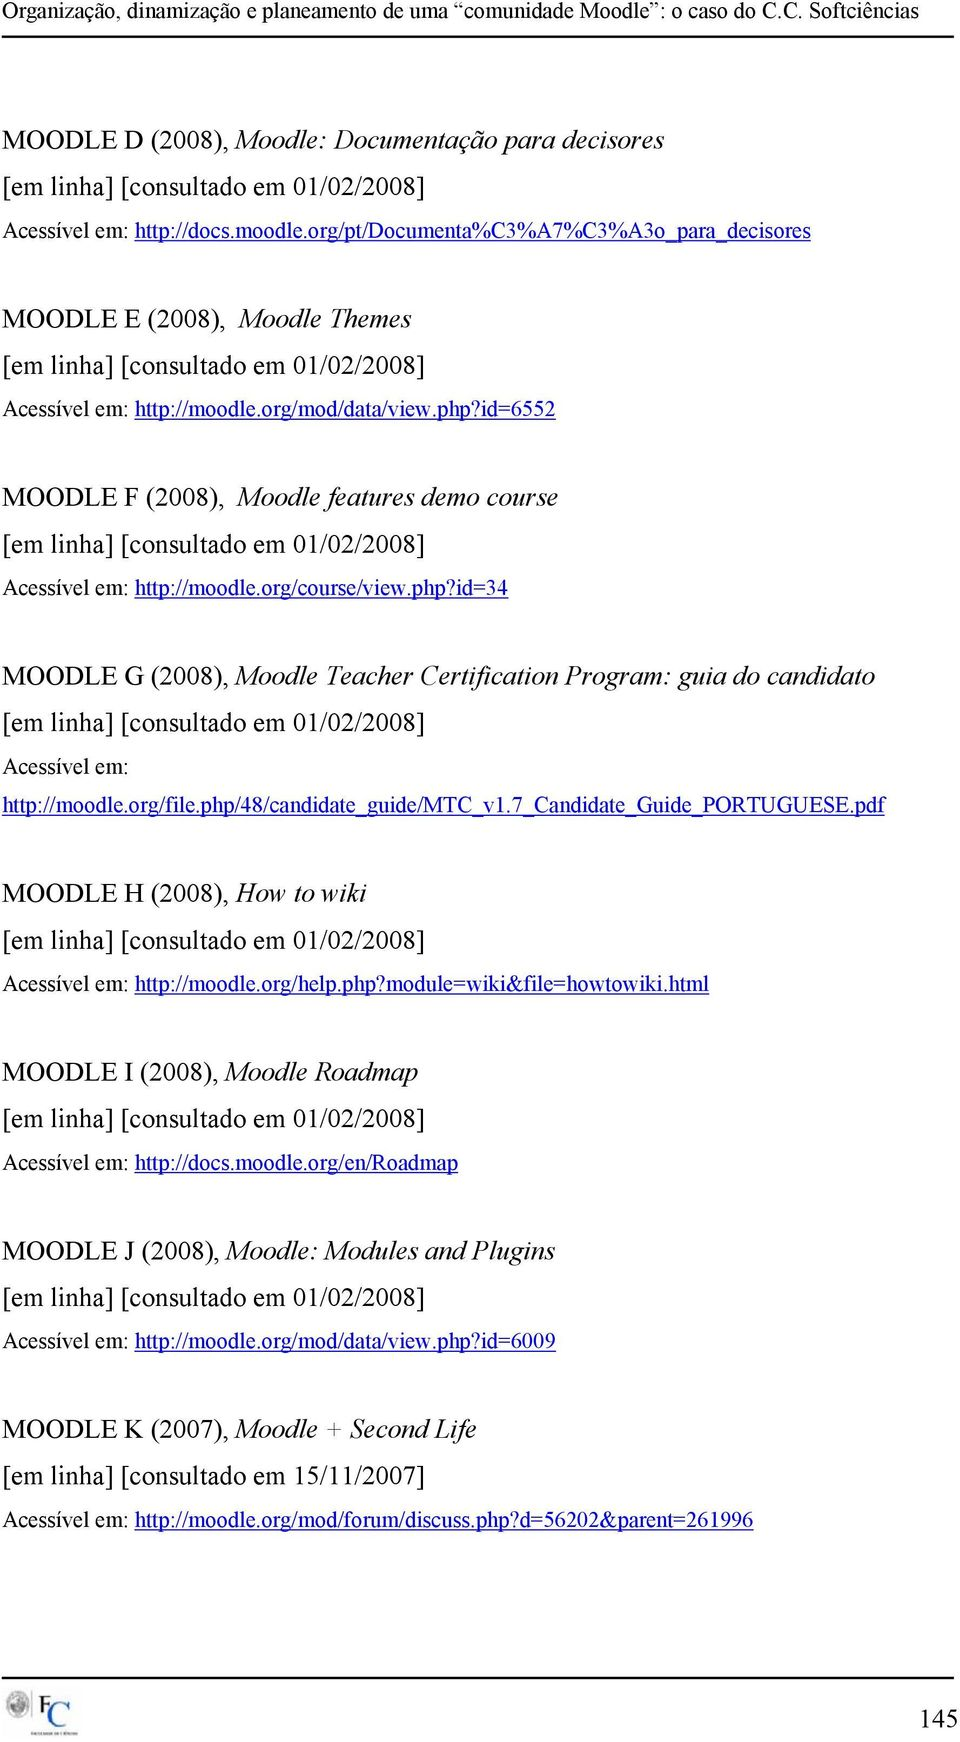 org/file.php/48/candidate_guide/mtc_v1.7_candidate_guide_portuguese.pdf MOODLE H (2008), How to wiki Acessível em: http://moodle.org/help.php?module=wiki&file=howtowiki.